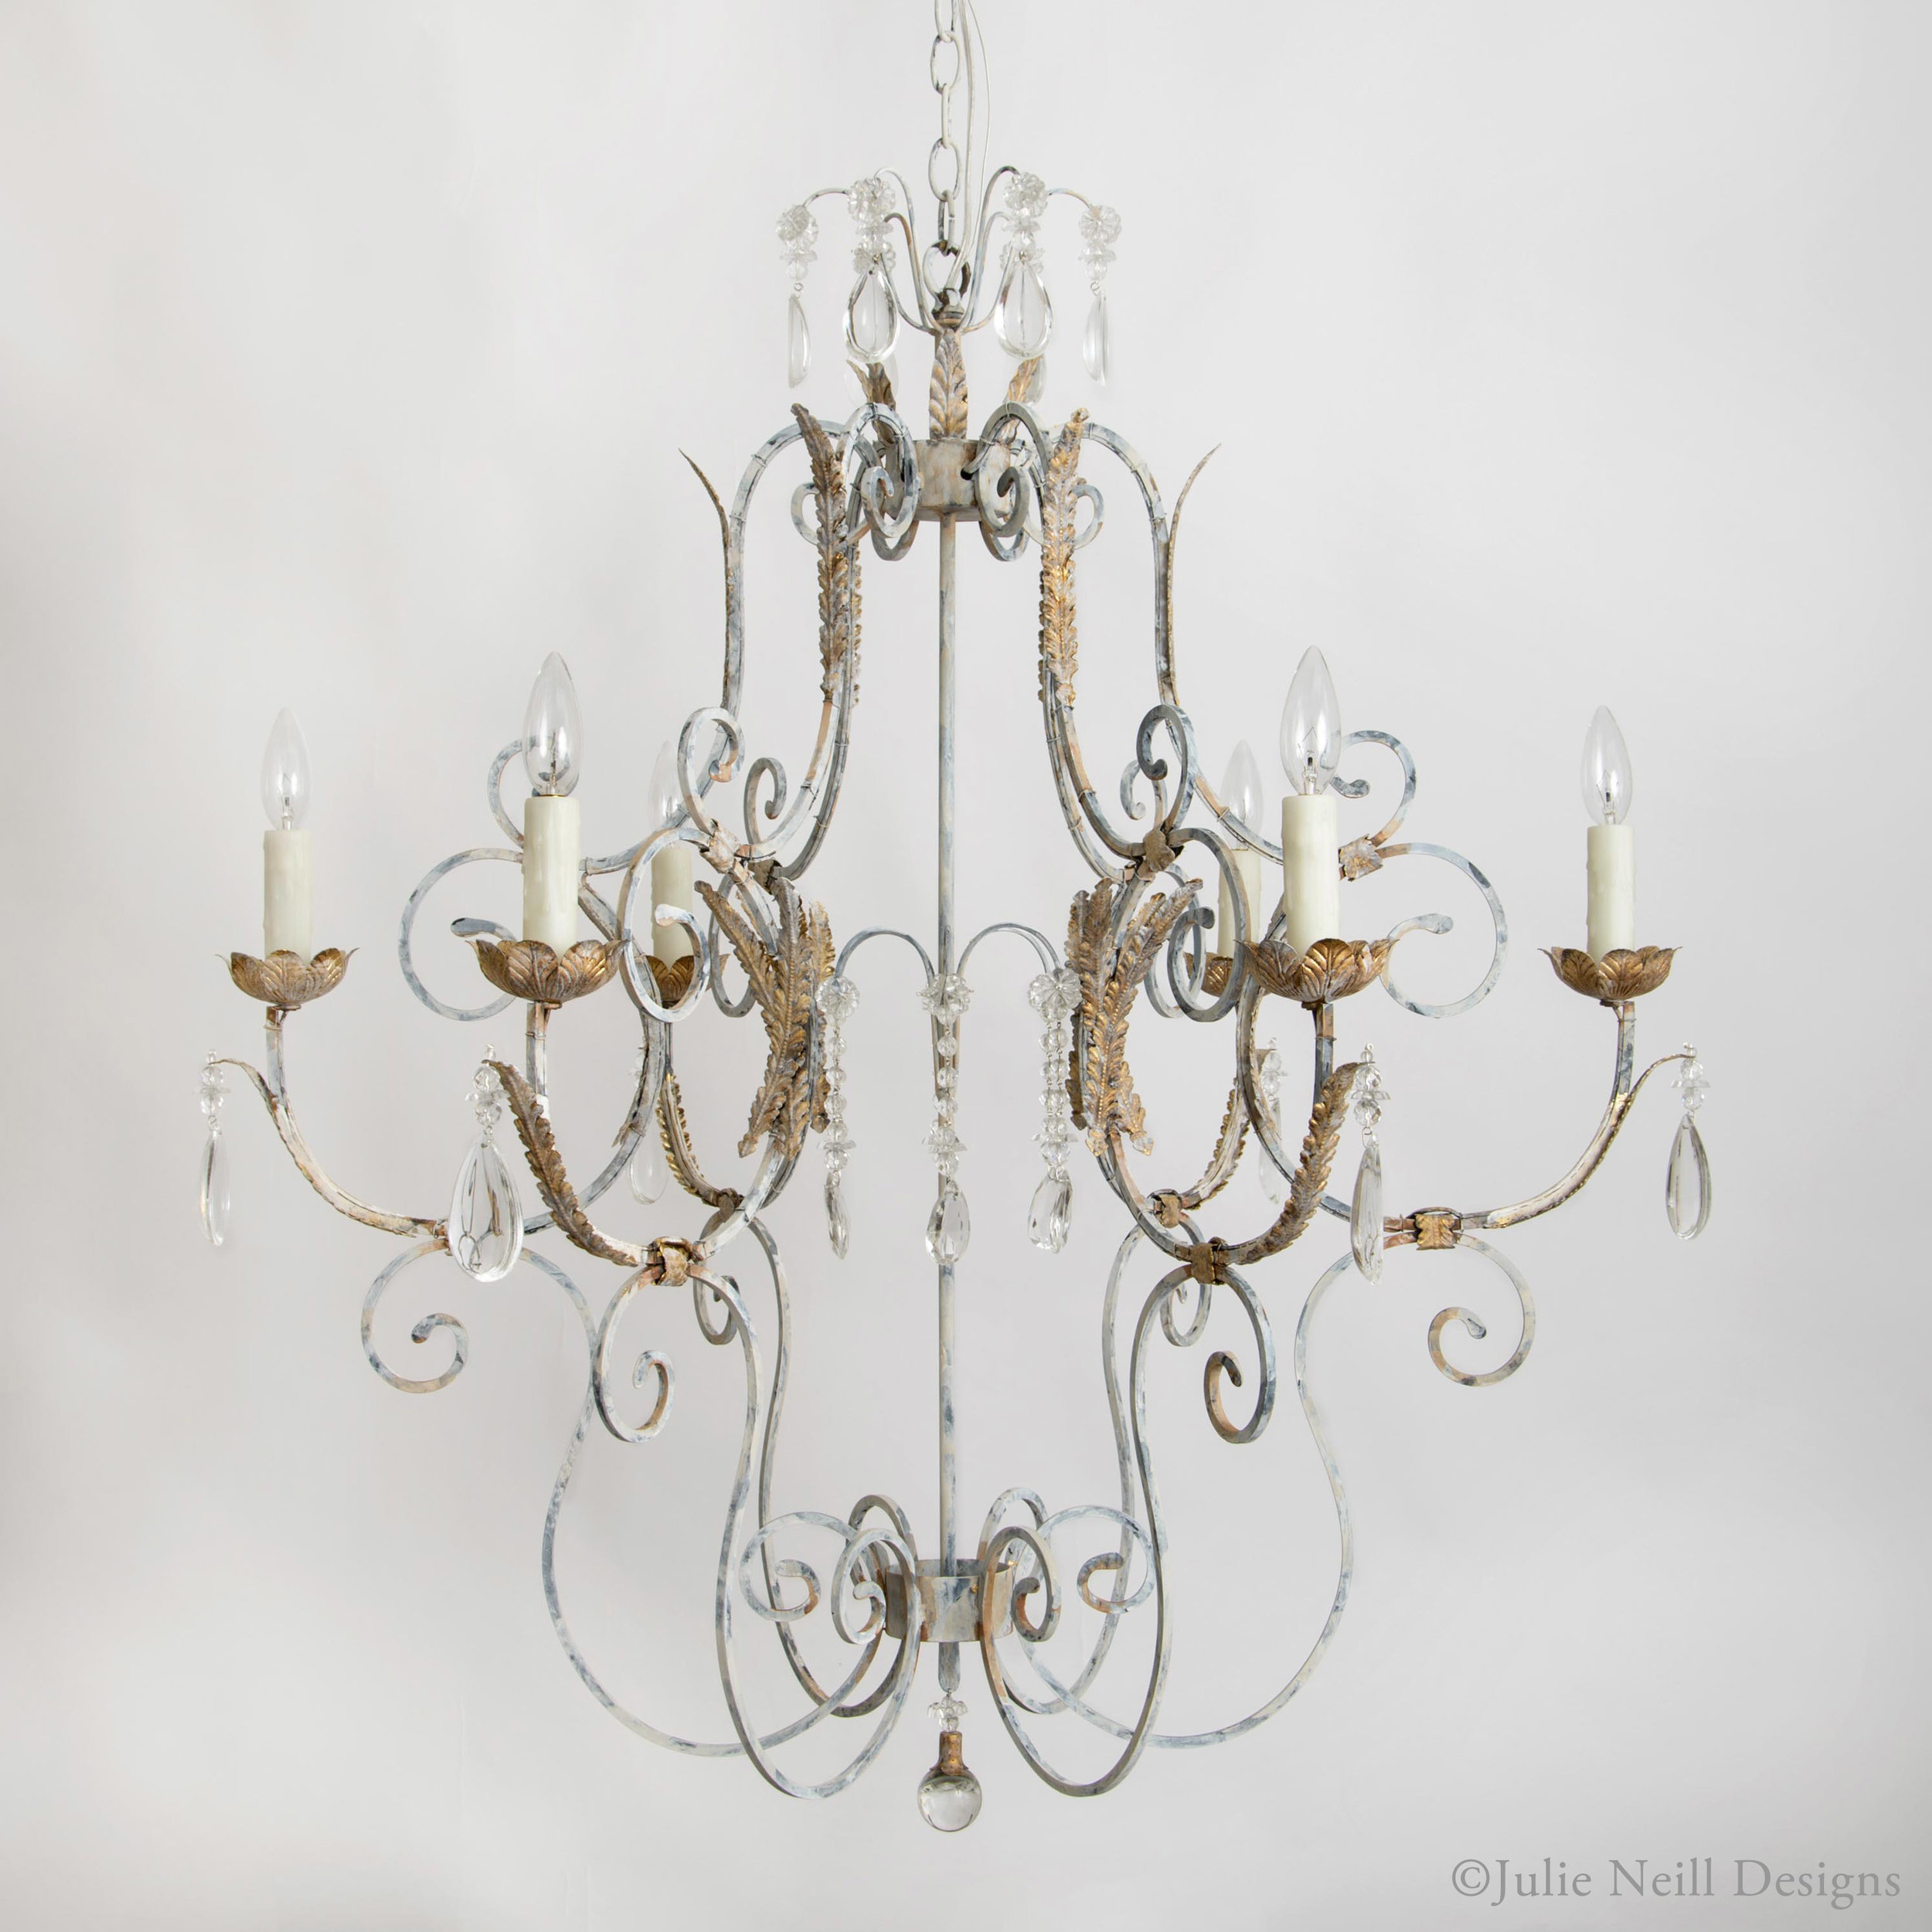 Ethel_Chandelier_JulieNeillDesigns